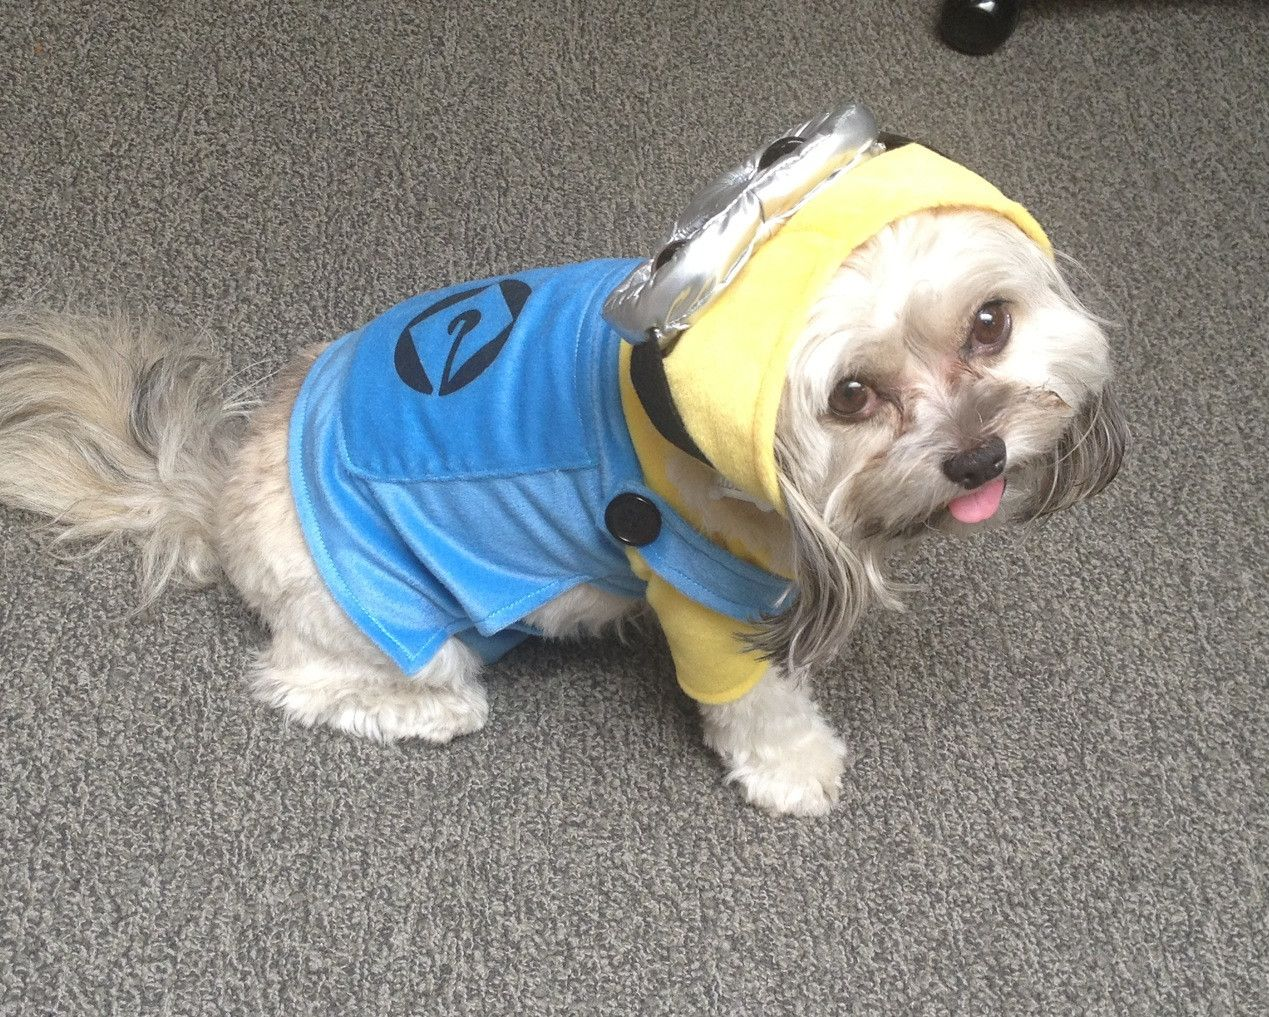 You Best Believe Freedom Will Have This Minion Pet Costume In Time For Halloween In Love 33 Minion Dog Costume Pet Costumes Minion Costumes